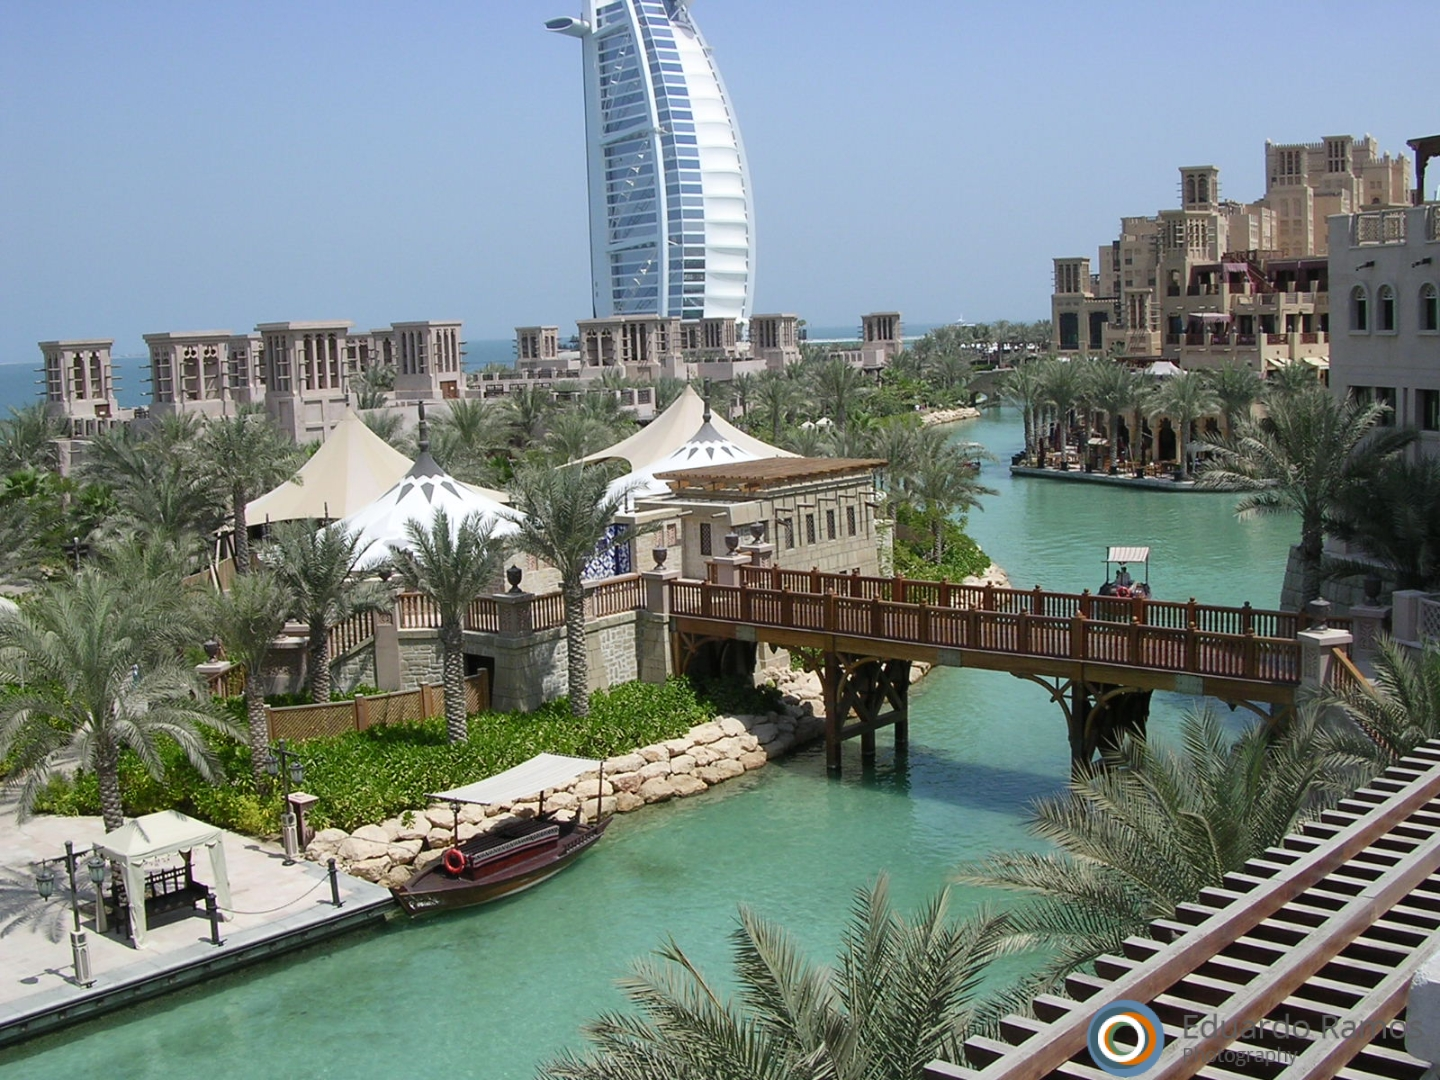 I chose Dubai as a holiday destination